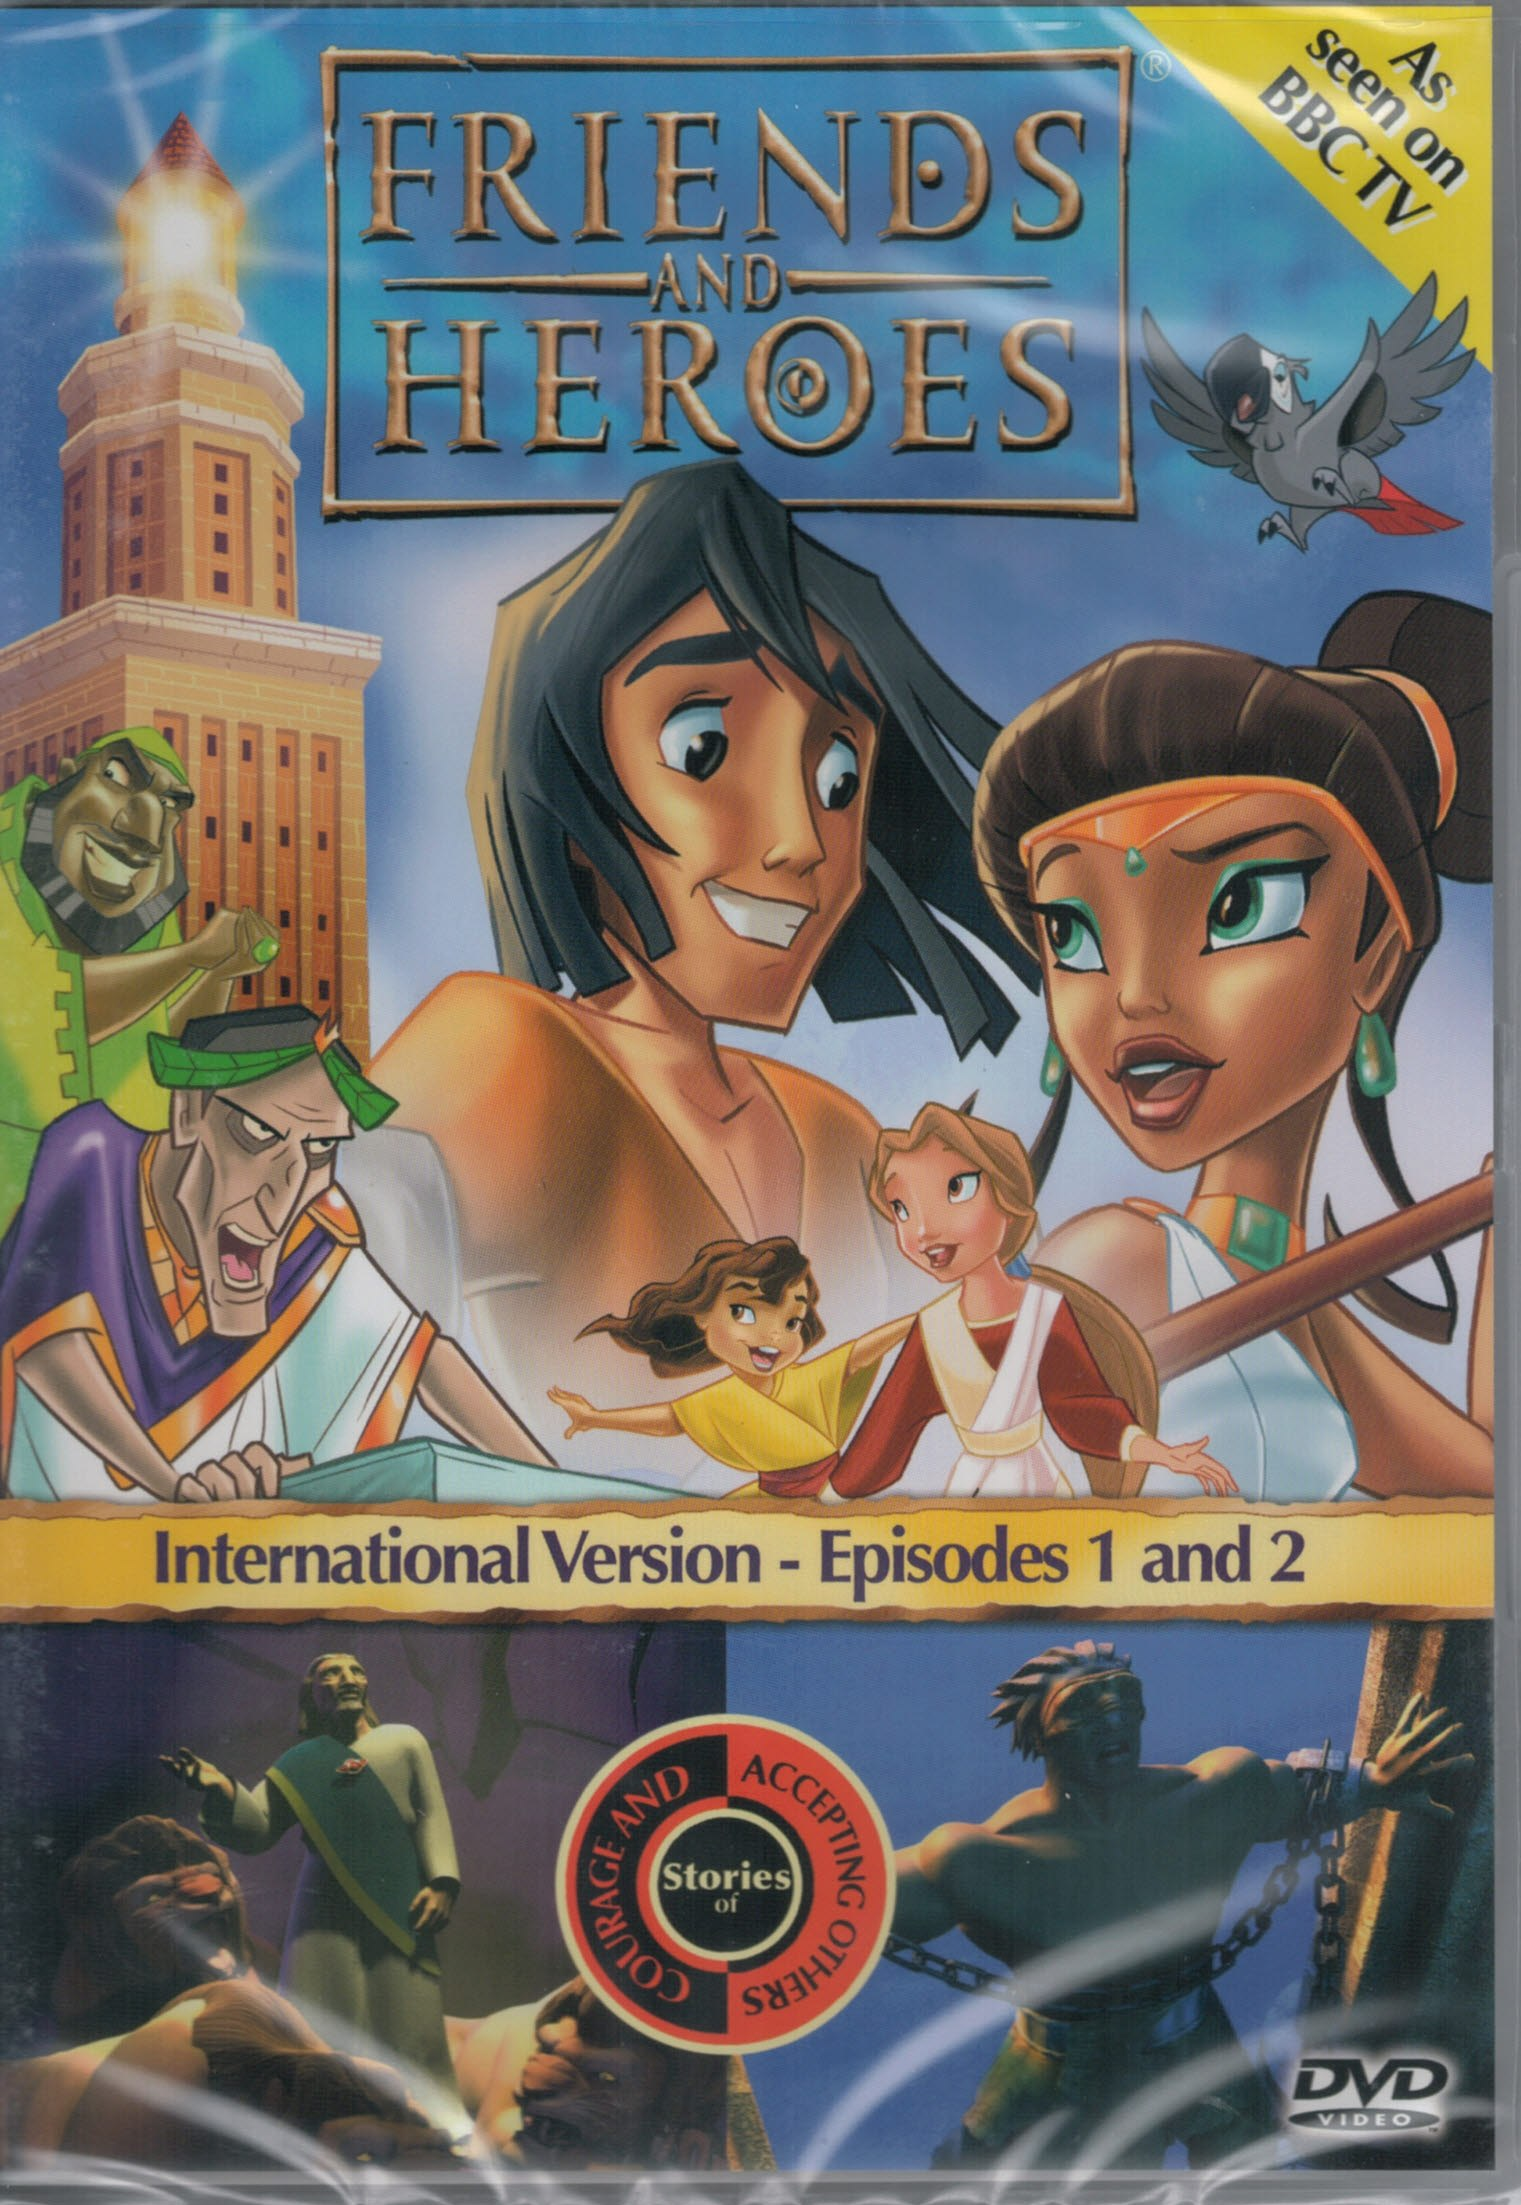 DVD Friends and Heroes Episodes 1-2